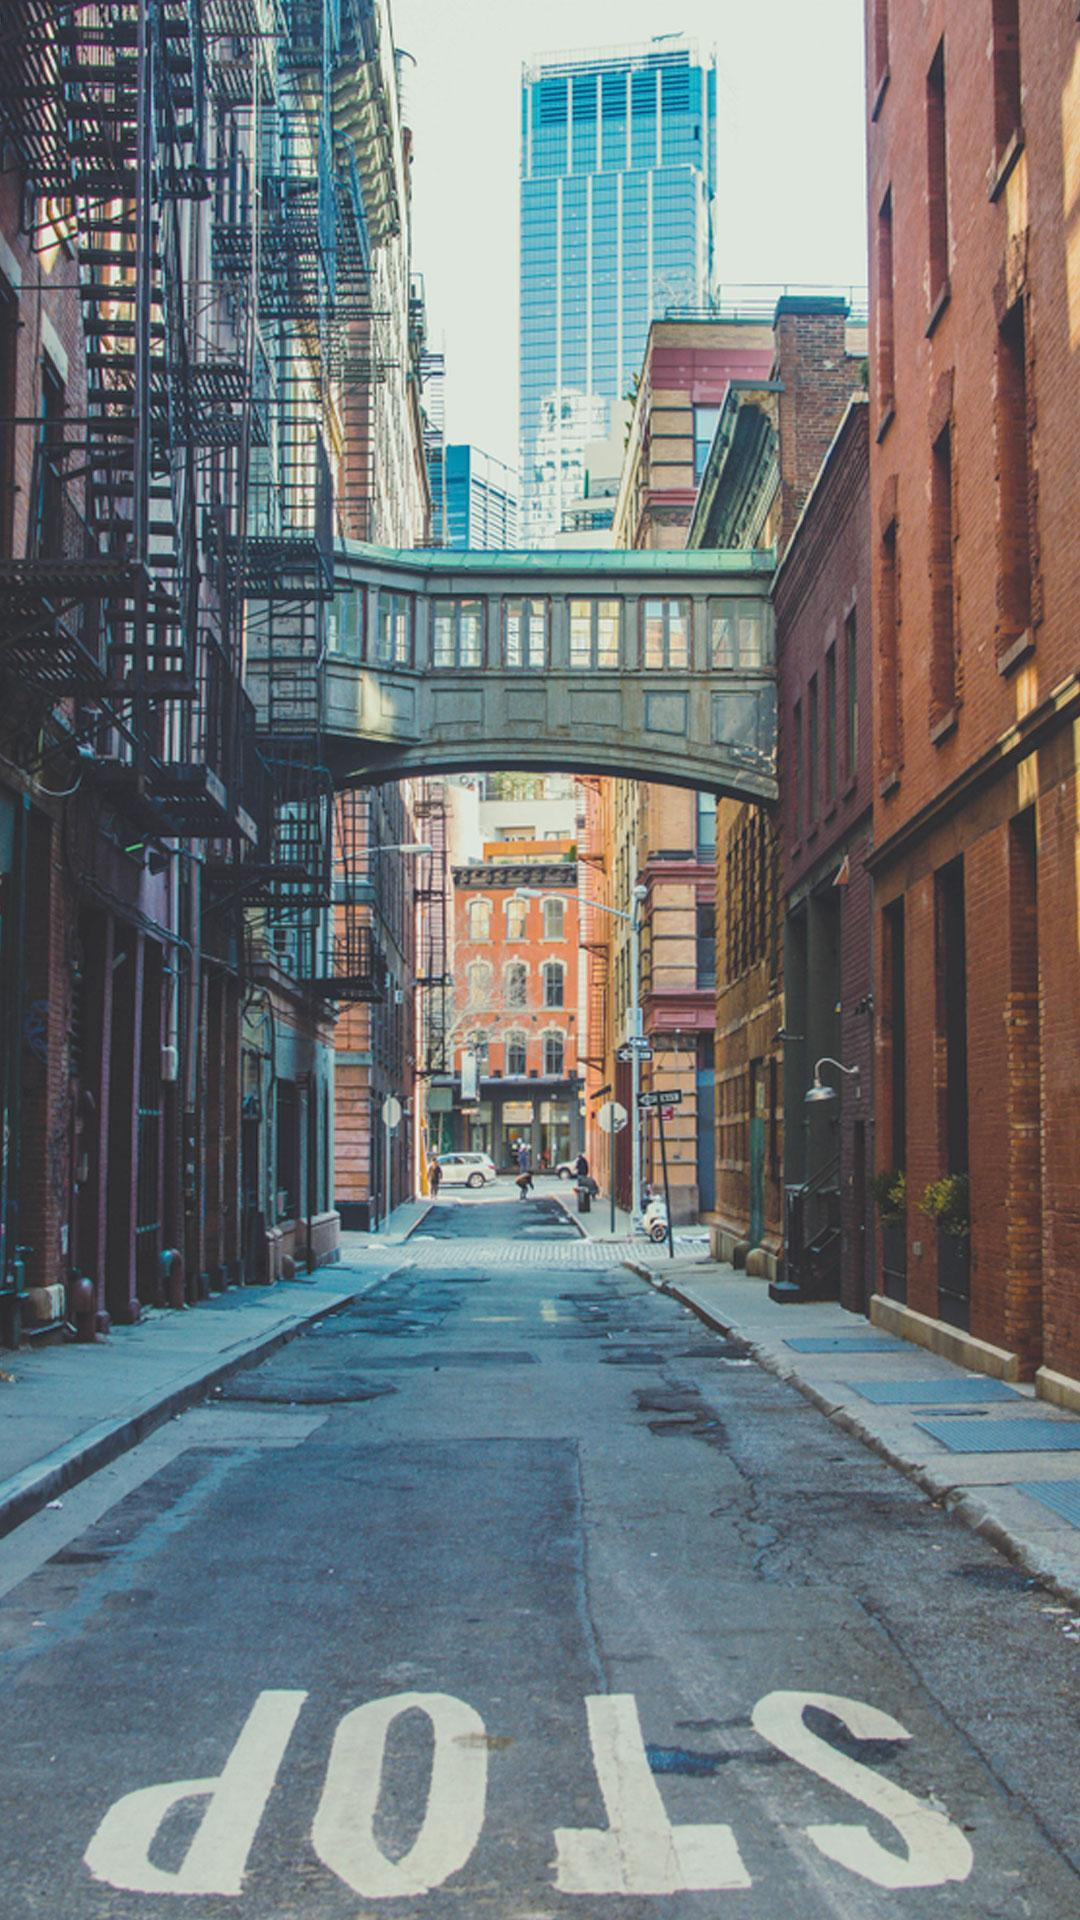 City Street Live Wallpaper For Android Apk Download